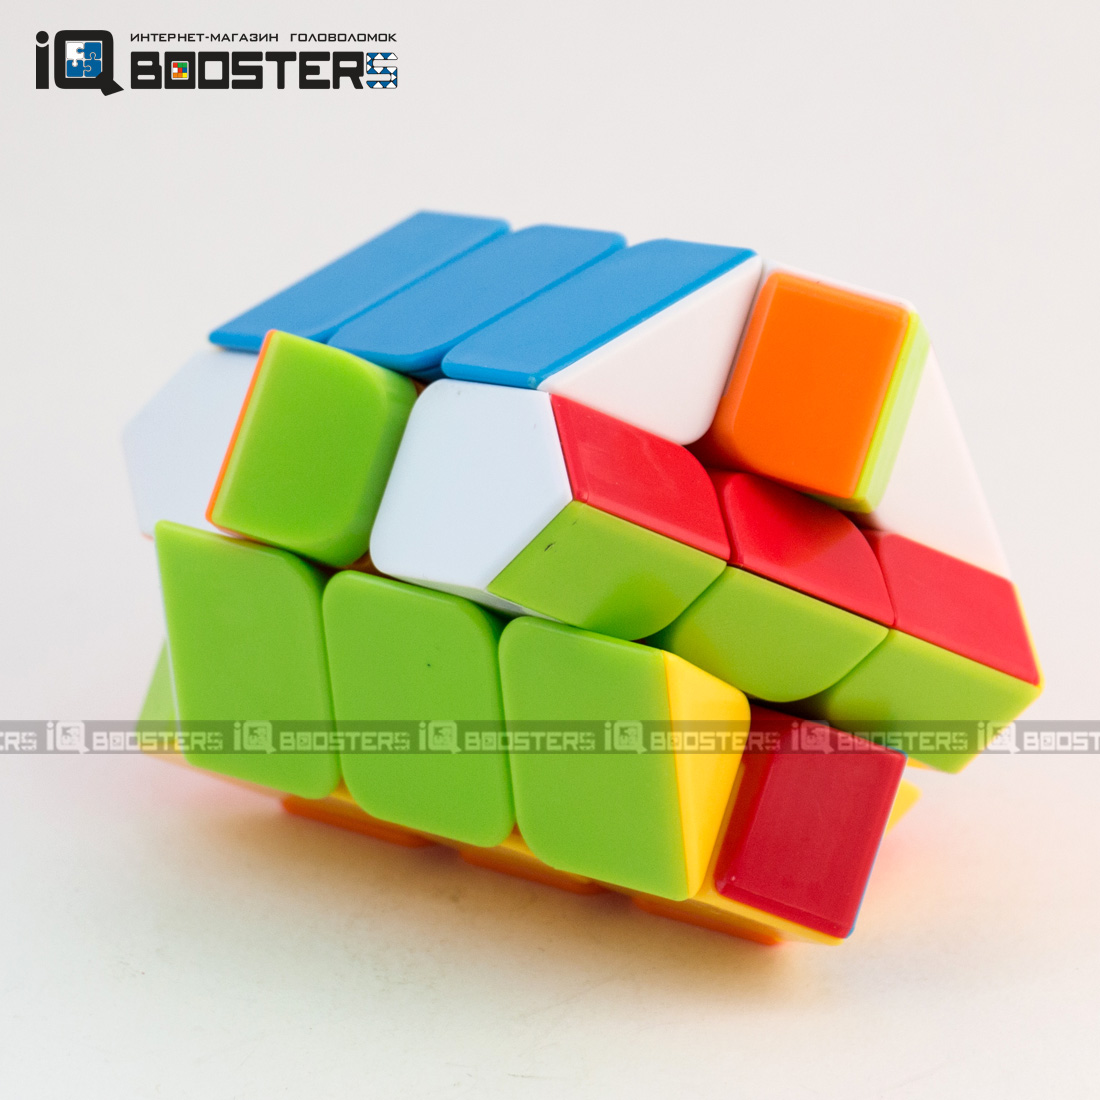 fanxin_fisher_cube_4